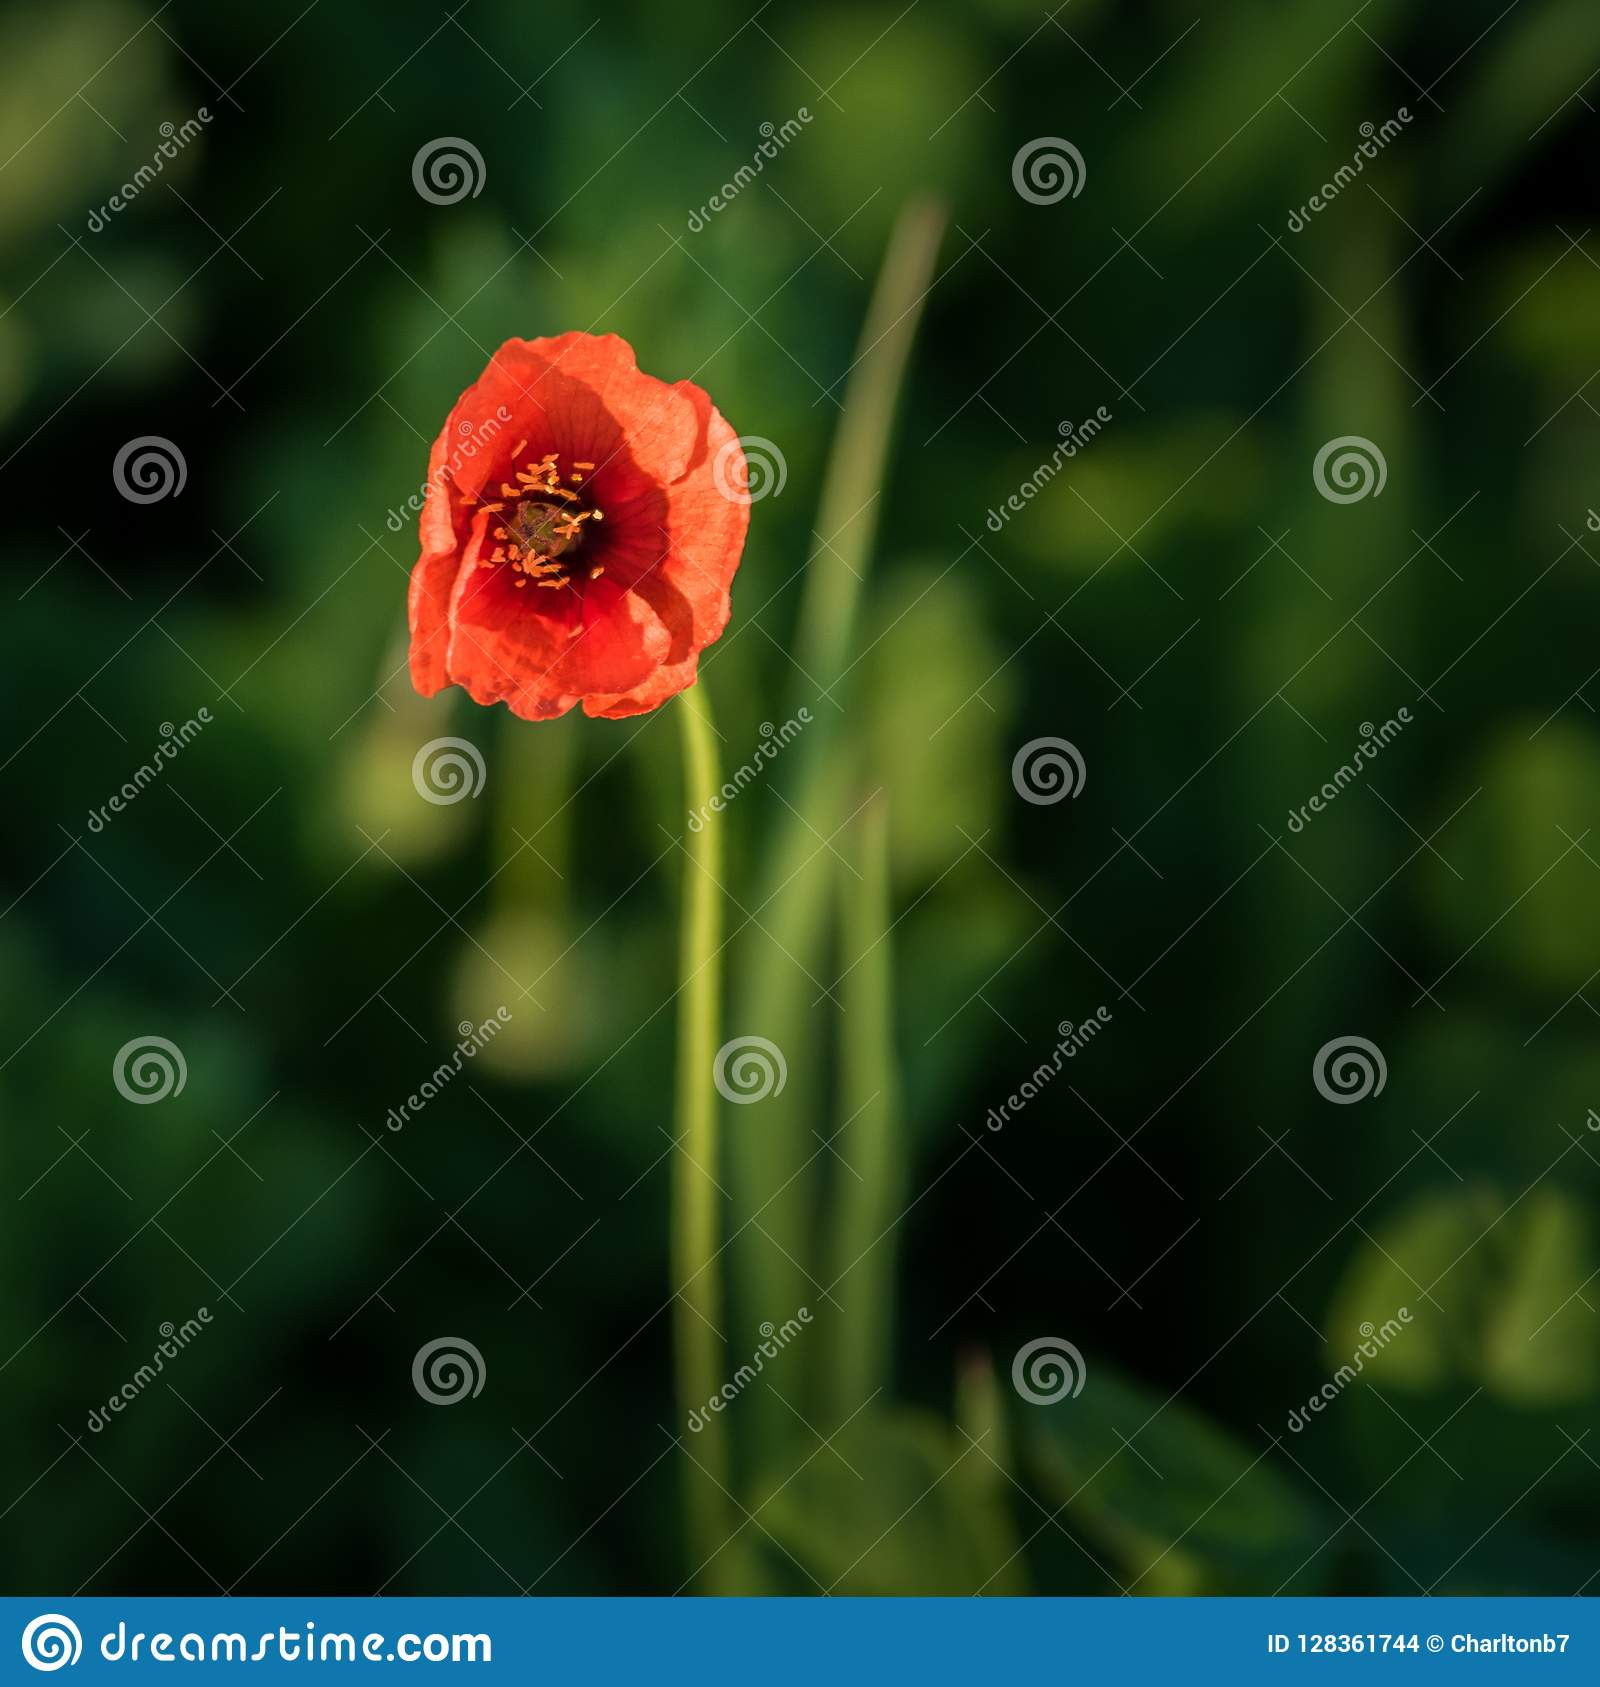 One red poppy flower with a green background out of focus. copy space